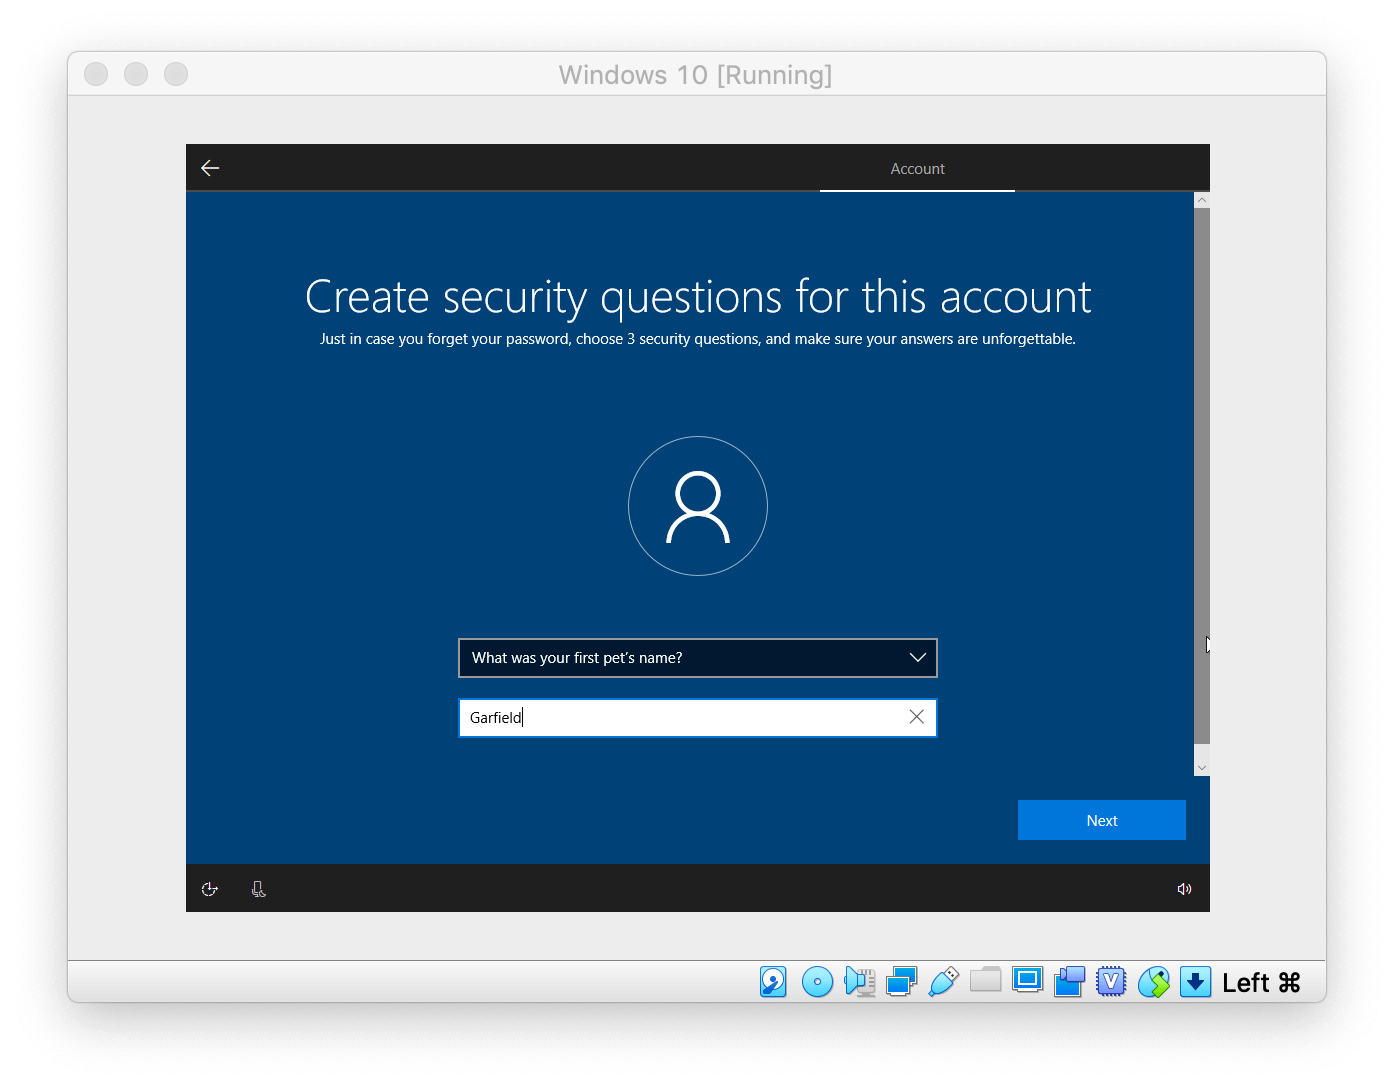 Windows Setup asking to create security questions